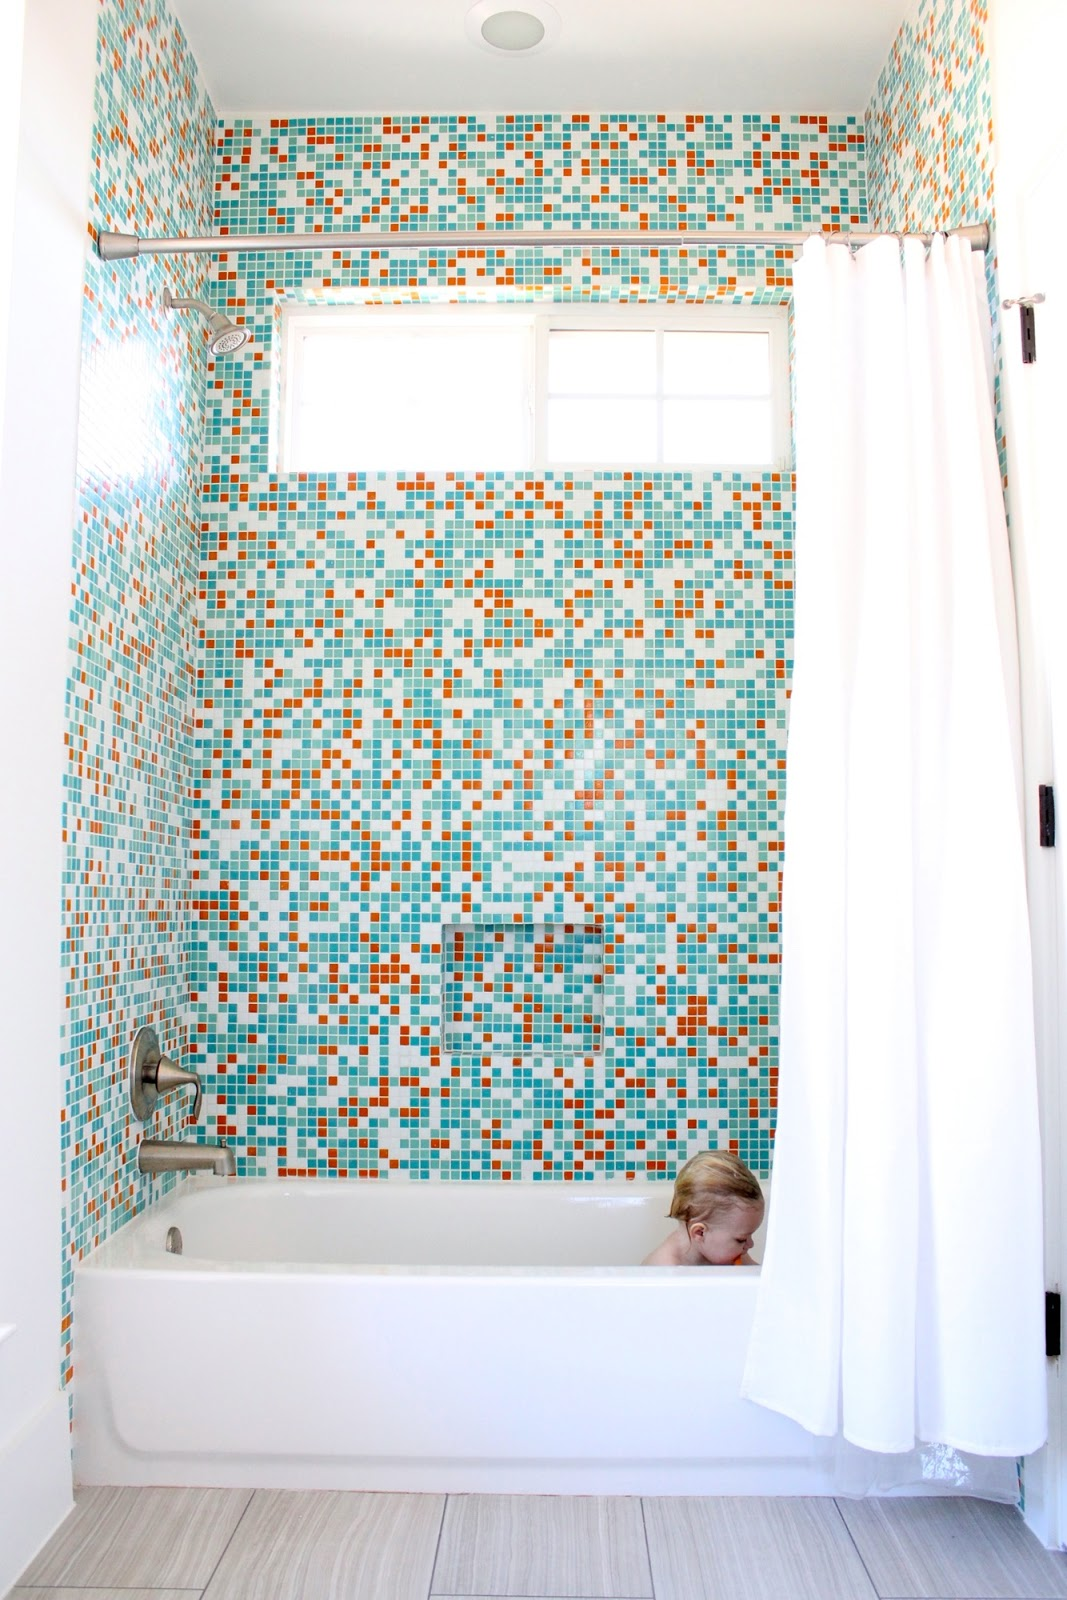 Building a new home: Mosaic tile and Wallpaper! – MADE EVERYDAY